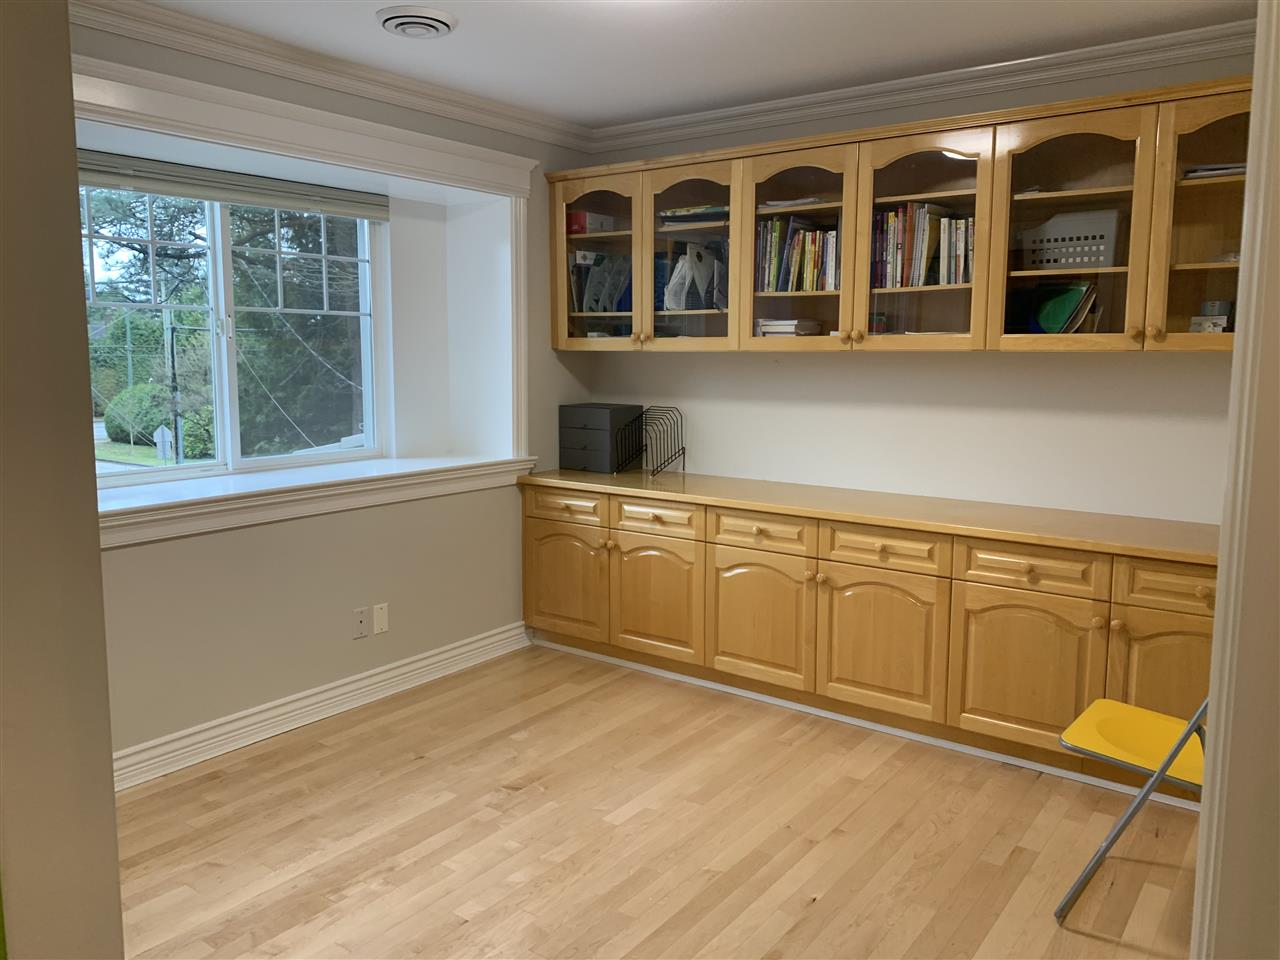 1292 W 40TH AVENUE - Shaughnessy House/Single Family for sale, 7 Bedrooms (R2527564) - #17